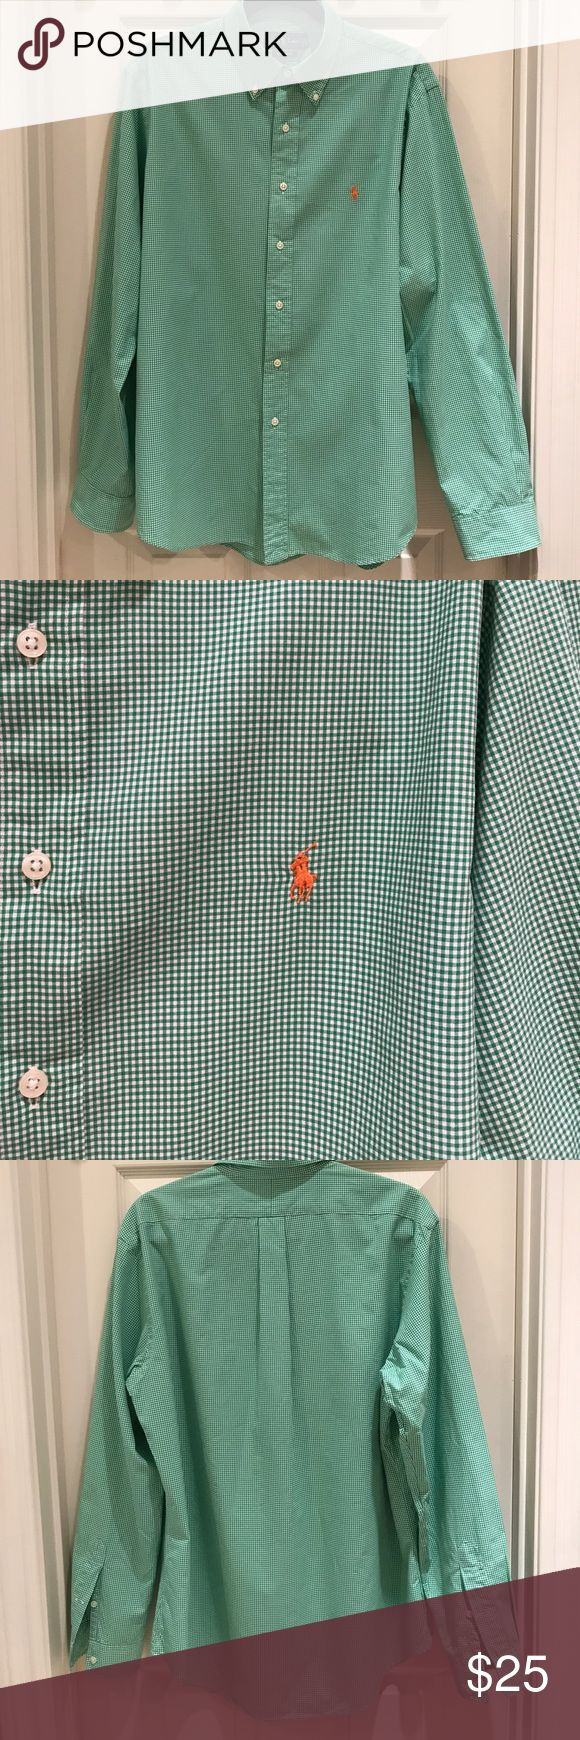 Men's Ralph Lauren button down collar dress shirt Ralph Lauren 100% cotton button down green check with orange polo dress shirt Ralph Lauren Shirts Casual Button Down Shirts